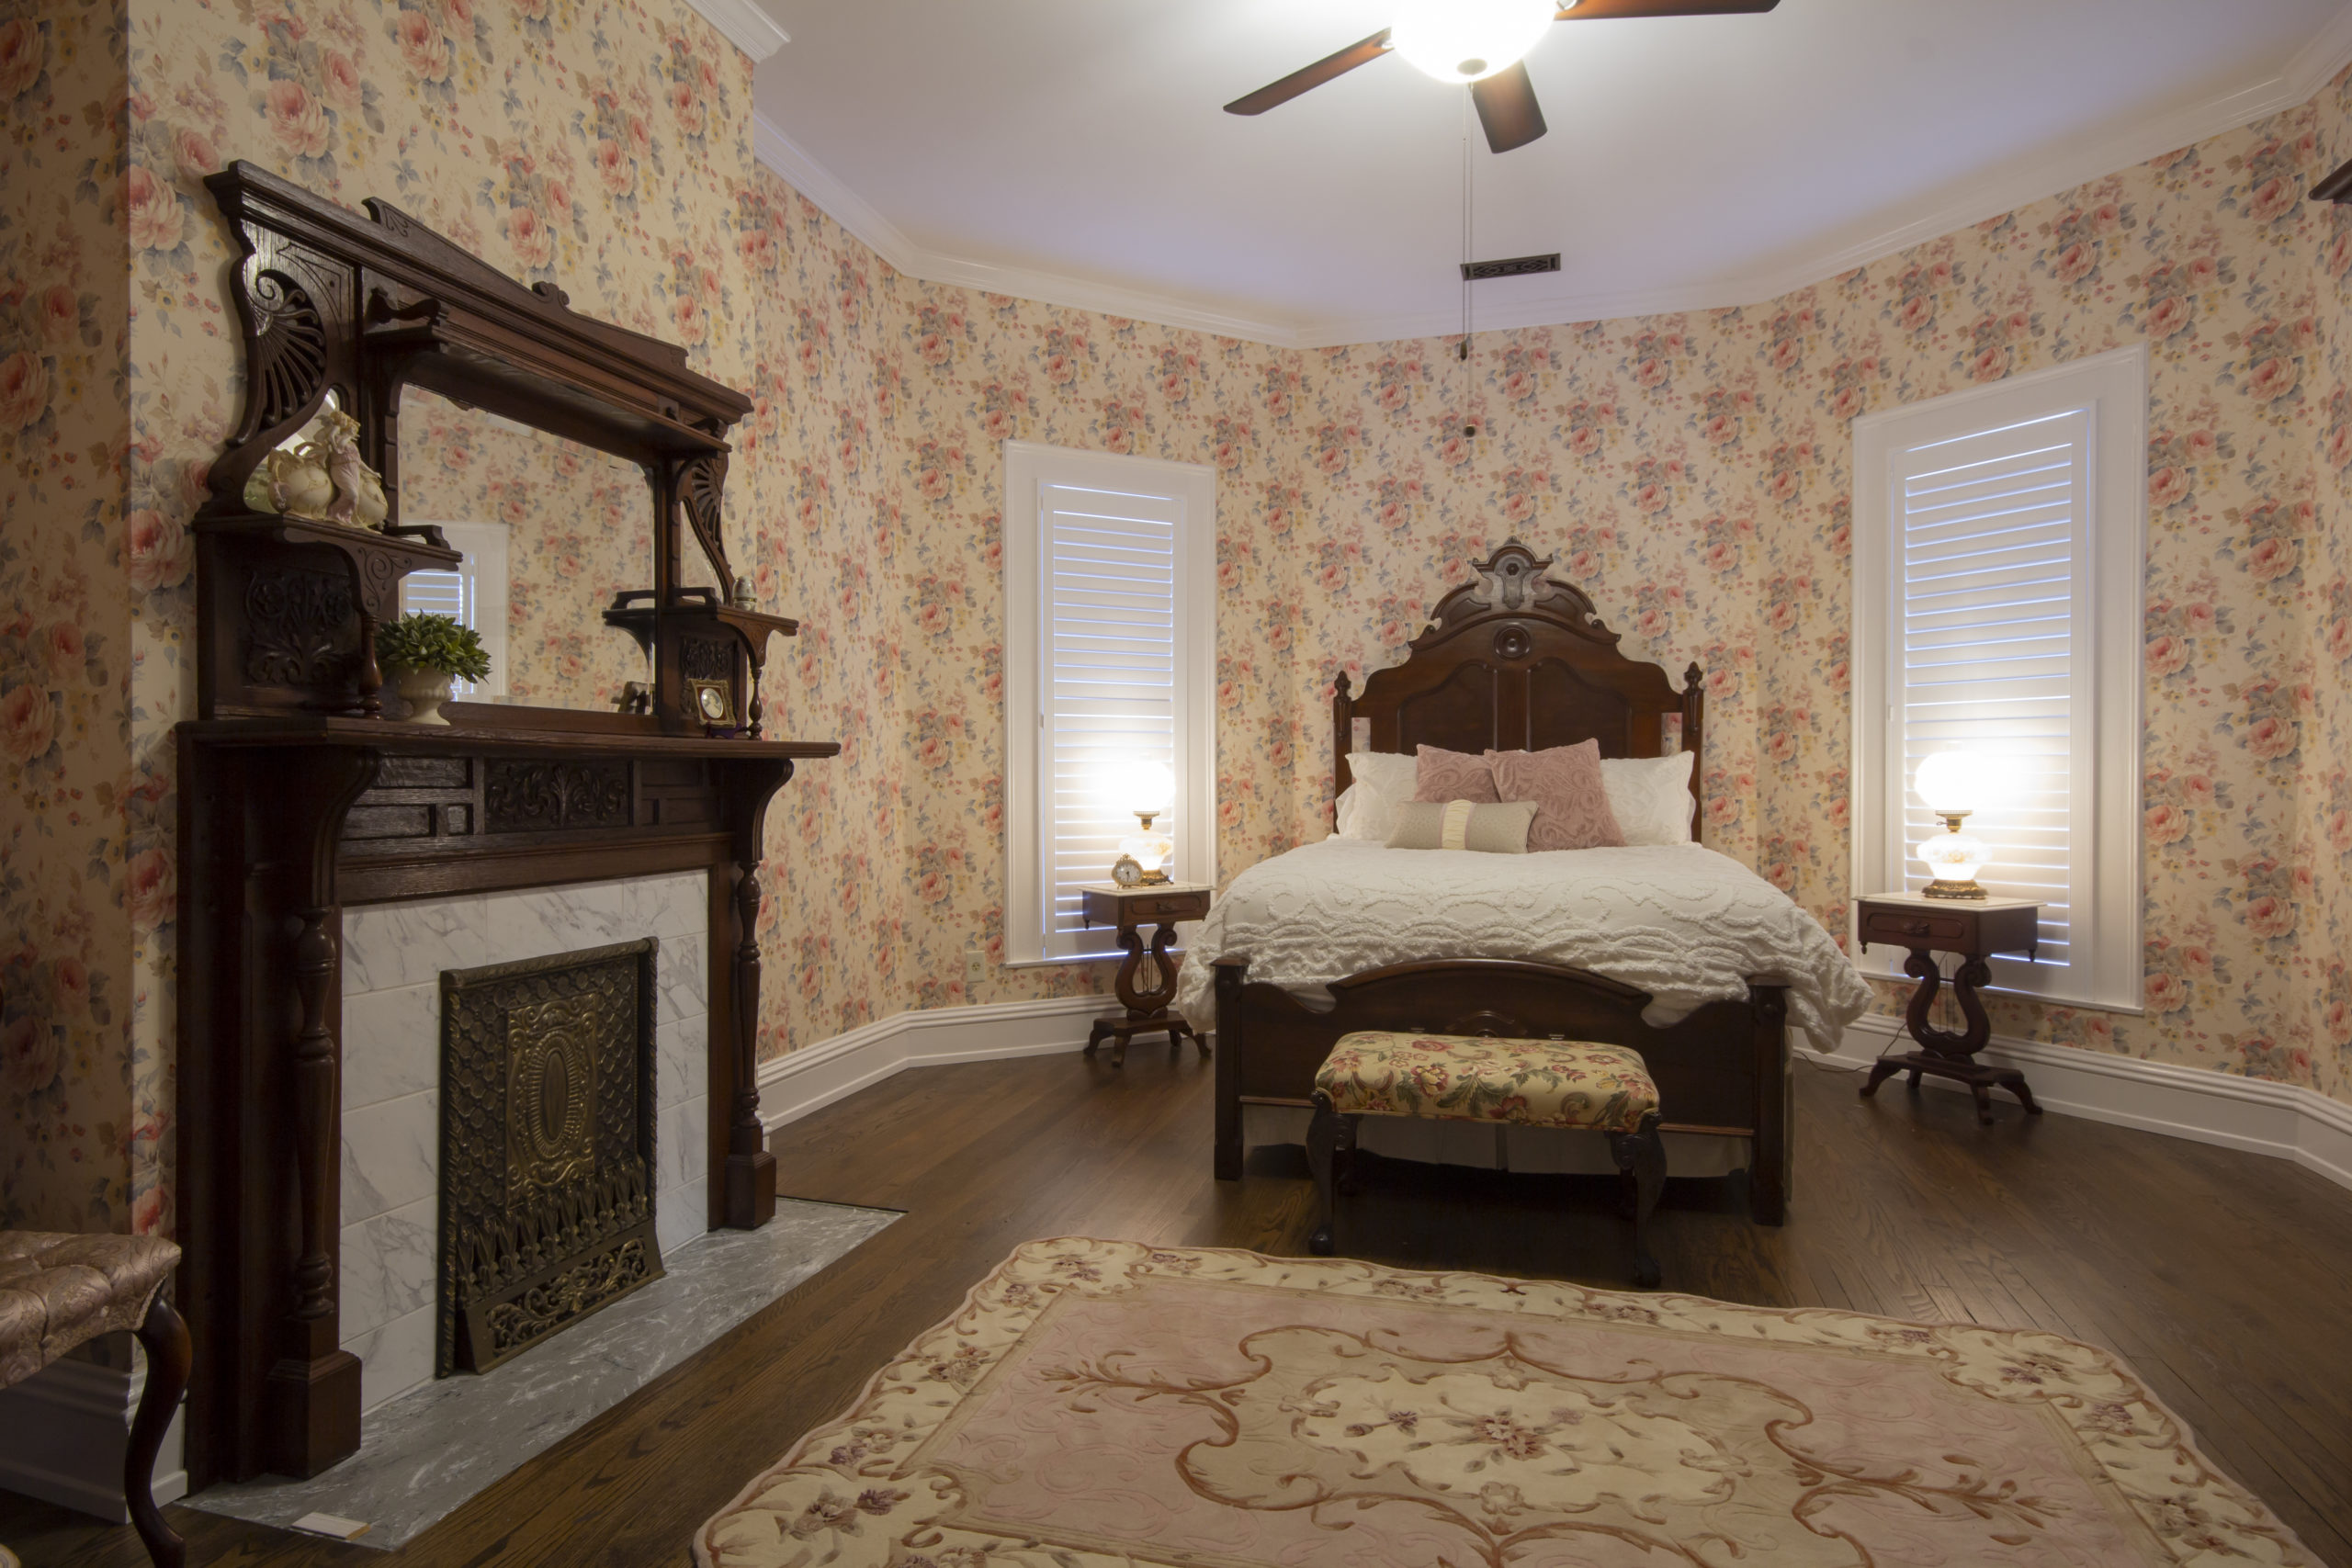 The Historic Belle Louise Bed & Breakfast Paducah, K